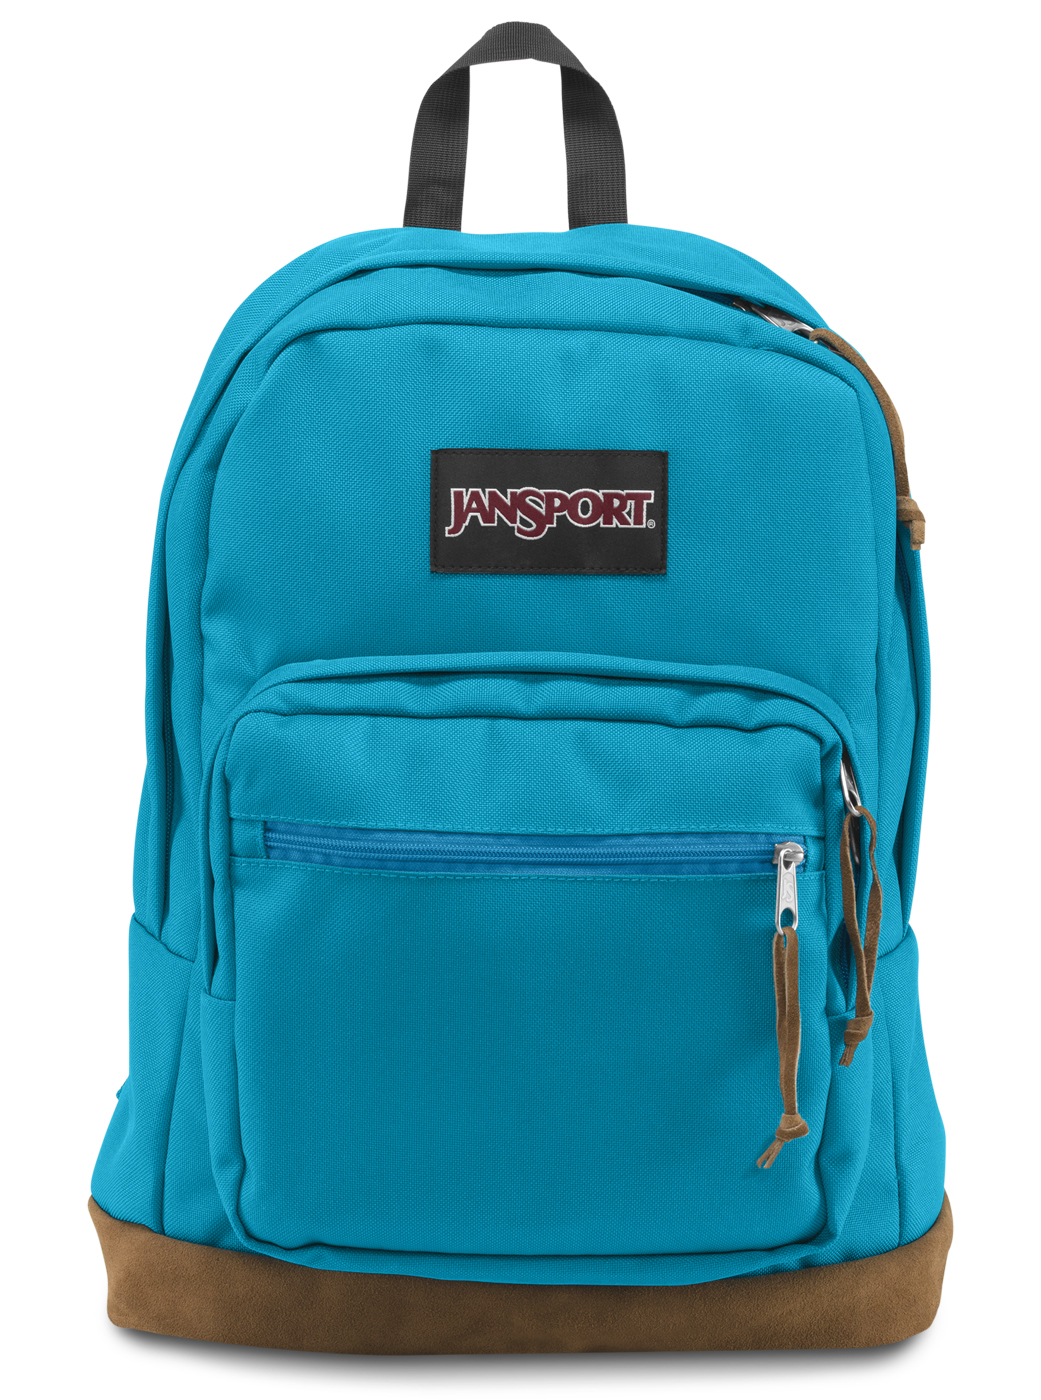 Cheap Jansport Backpacks Free Shipping Df0PR8Zs